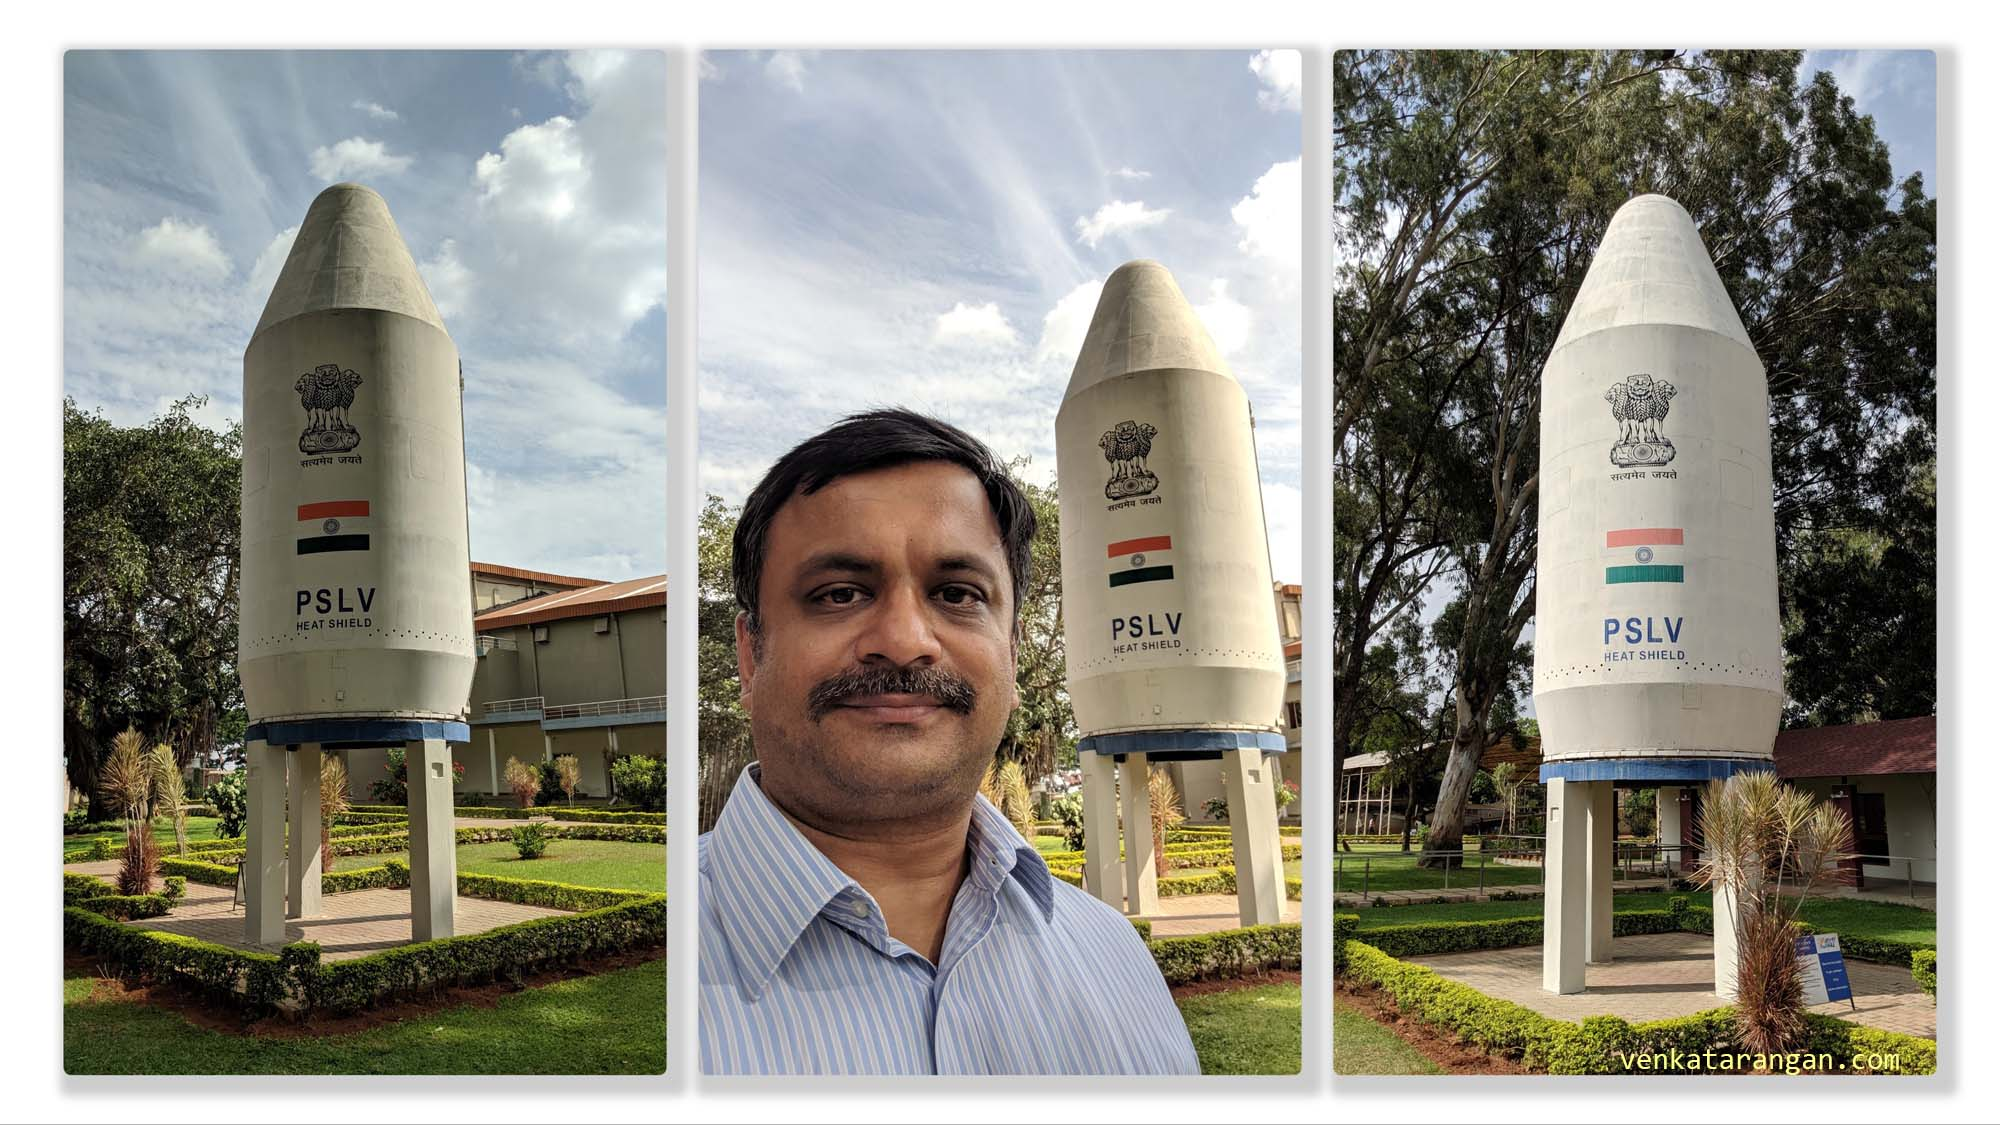 India's PSLV Heat shield on display (it is massive) - Polar Satellite Launch Vehicle